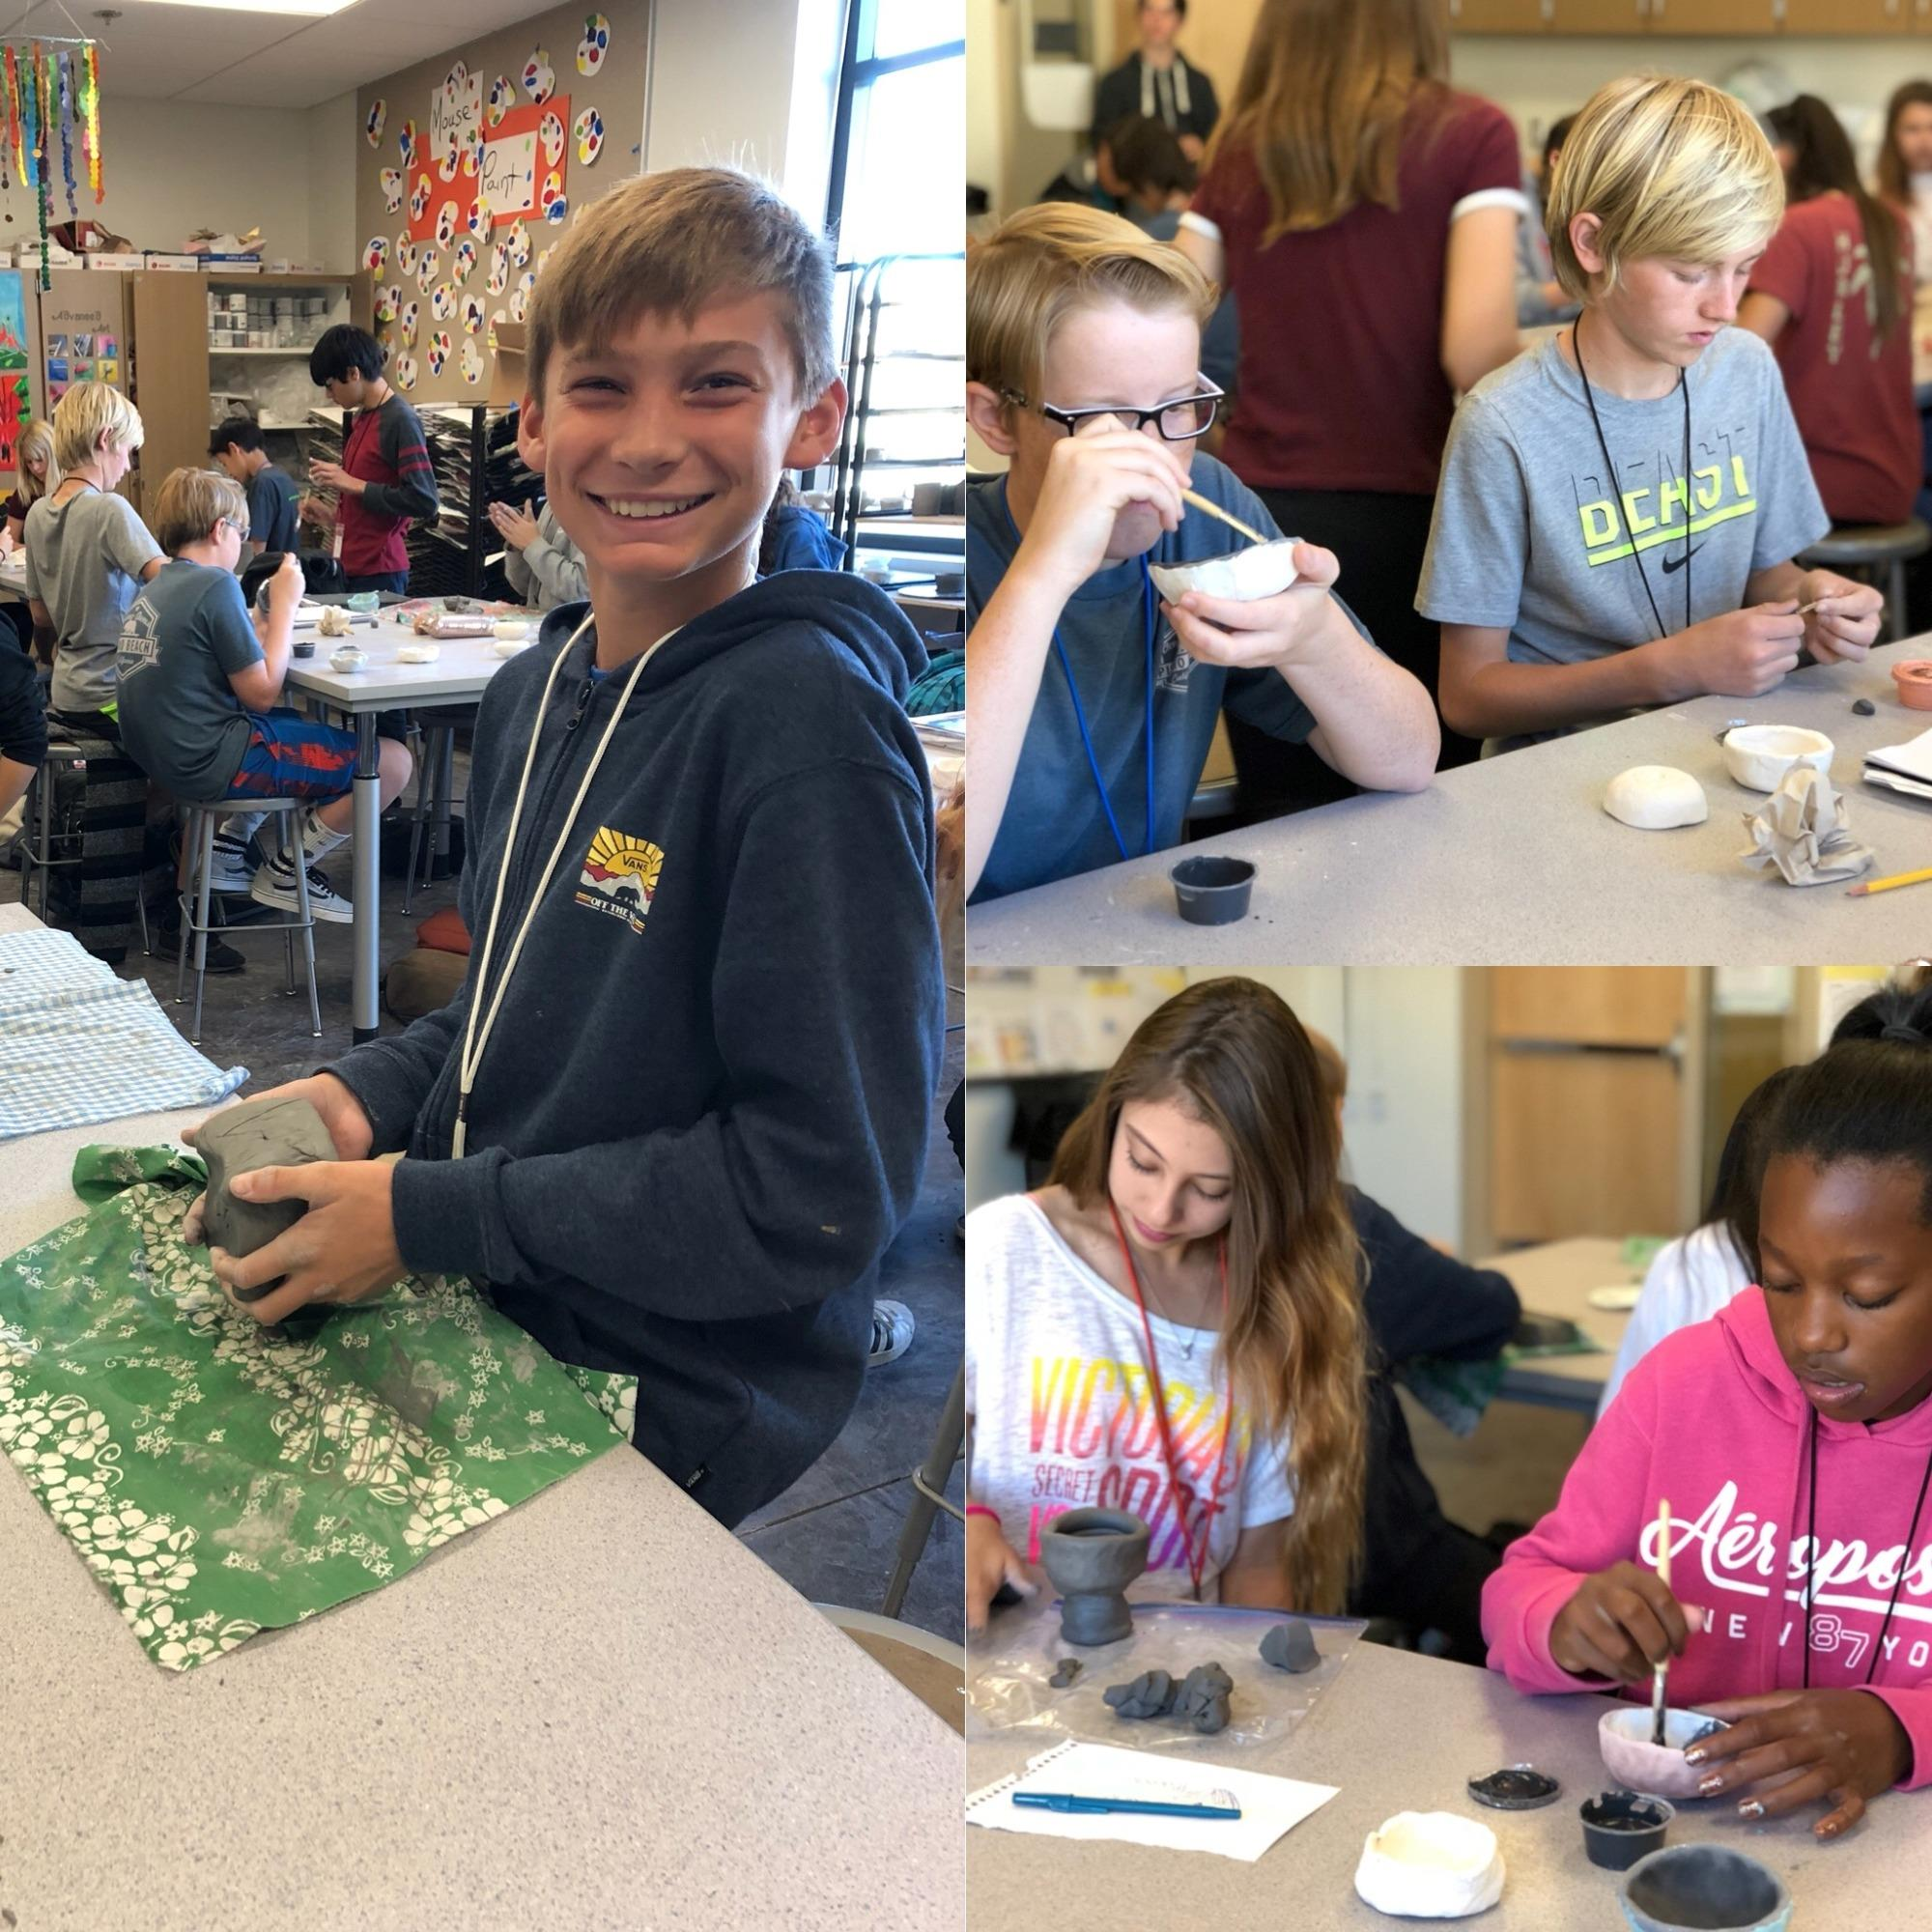 Students working on ceramic projects.